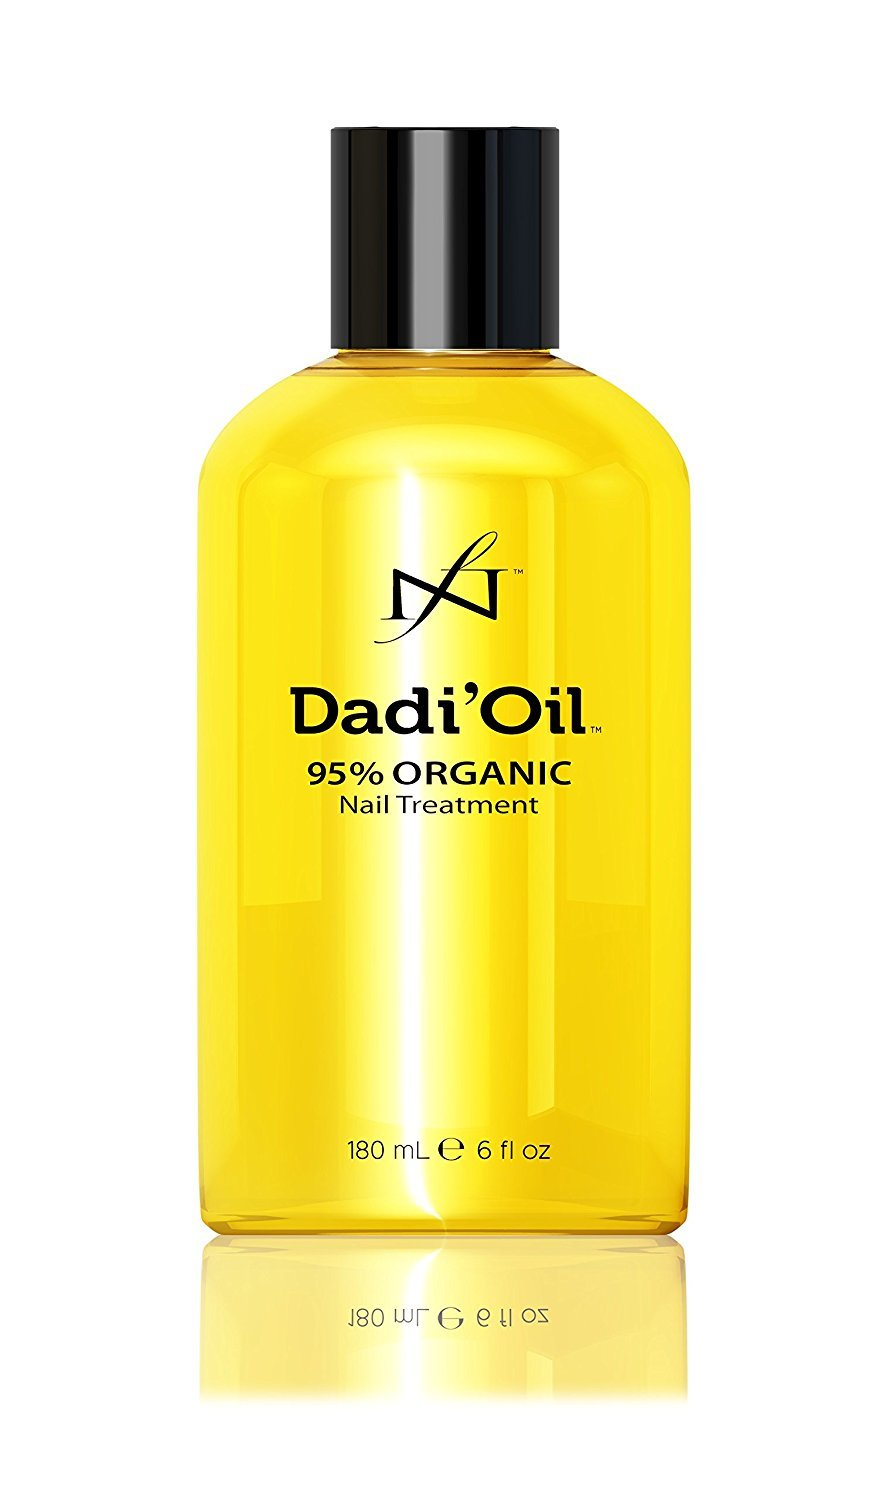 Dadi'Oil Nail Treatment Oil 180 ml Dadi' Oil 3103